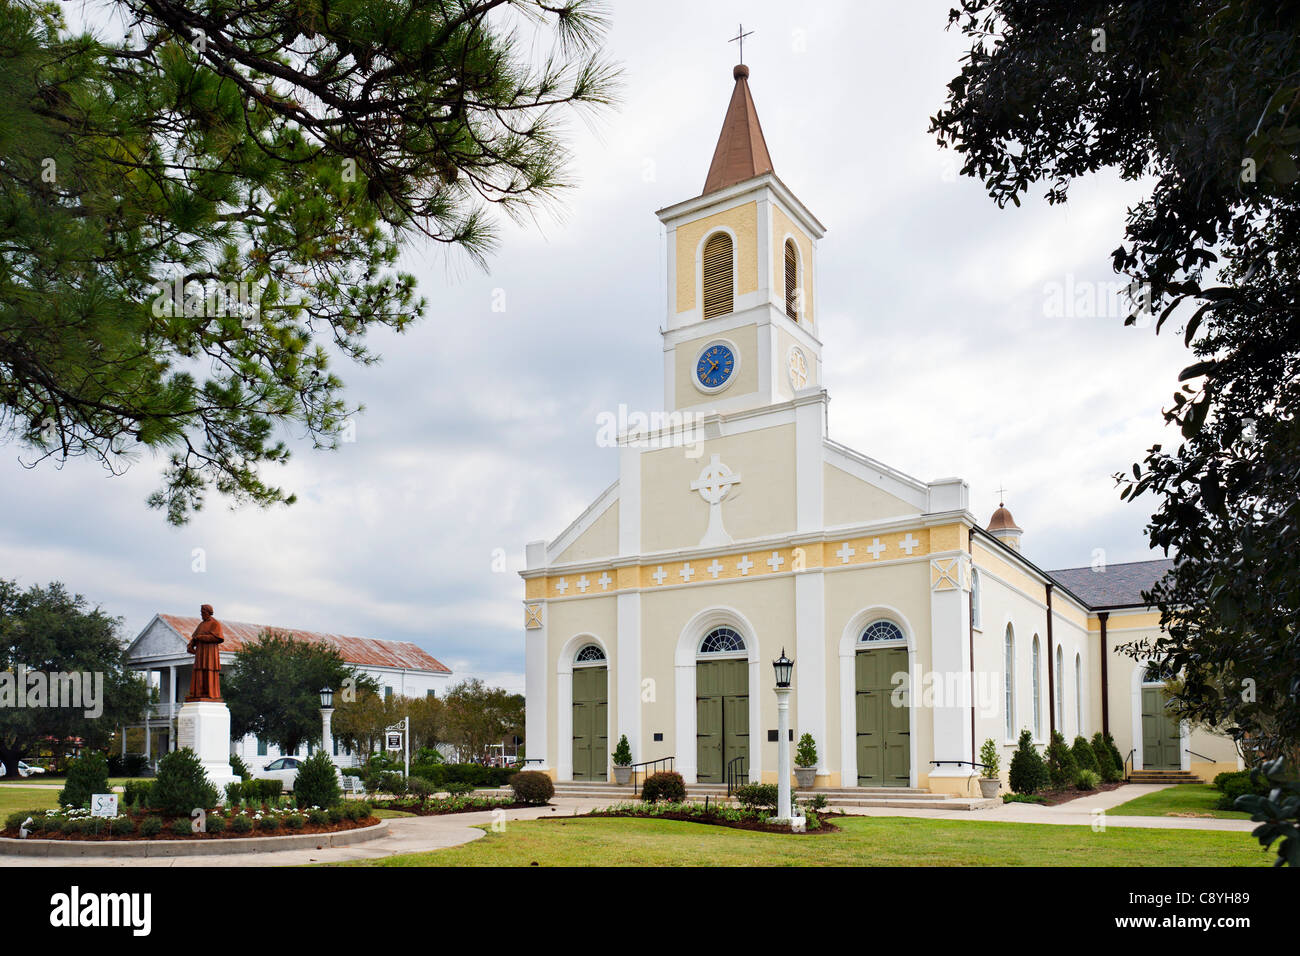 Saint Martin of Tours Roman Catholic Church in the historic old town of St Martinville, Cajun country, Lousiana, - Stock Image